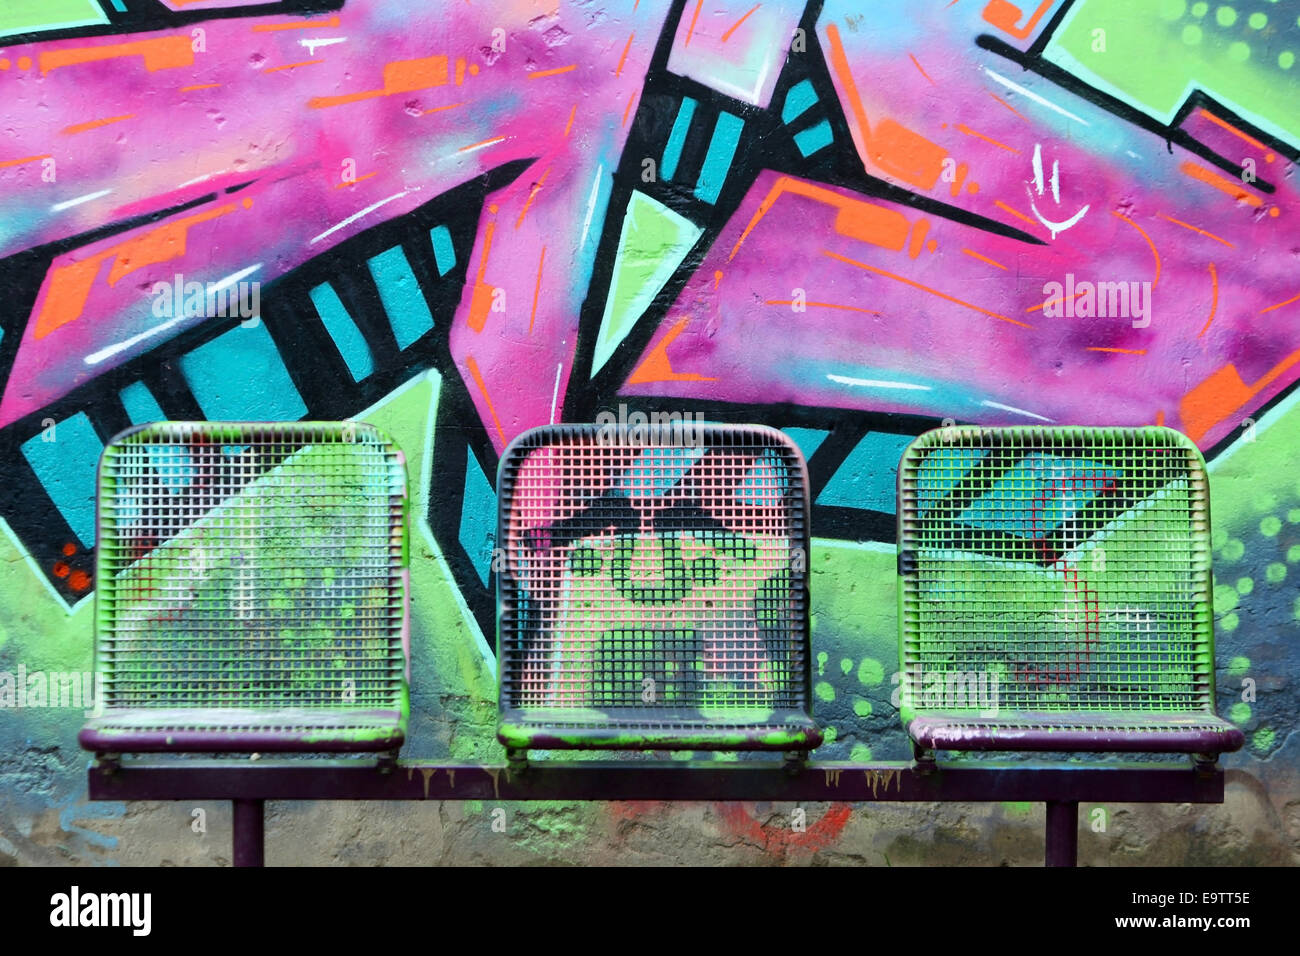 Graffiti wall zagreb - Stock Photo Three Painted Street Chairs In Front Of Graffiti Wall On A Schoolyard